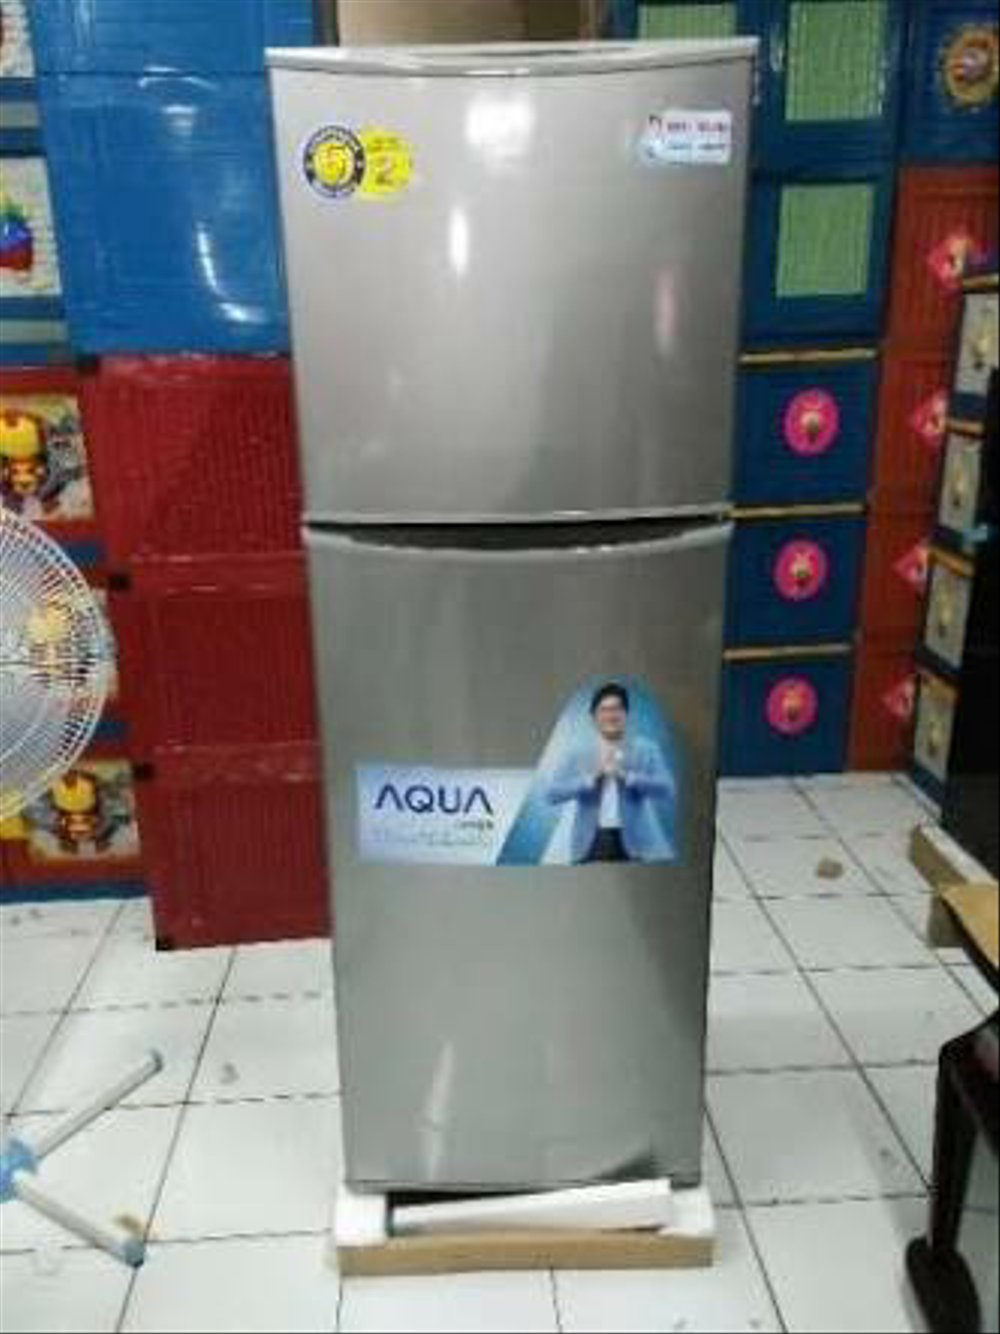 hight resolution of jual kulkas 2 pintu aqua japan type aqr d260 no frost